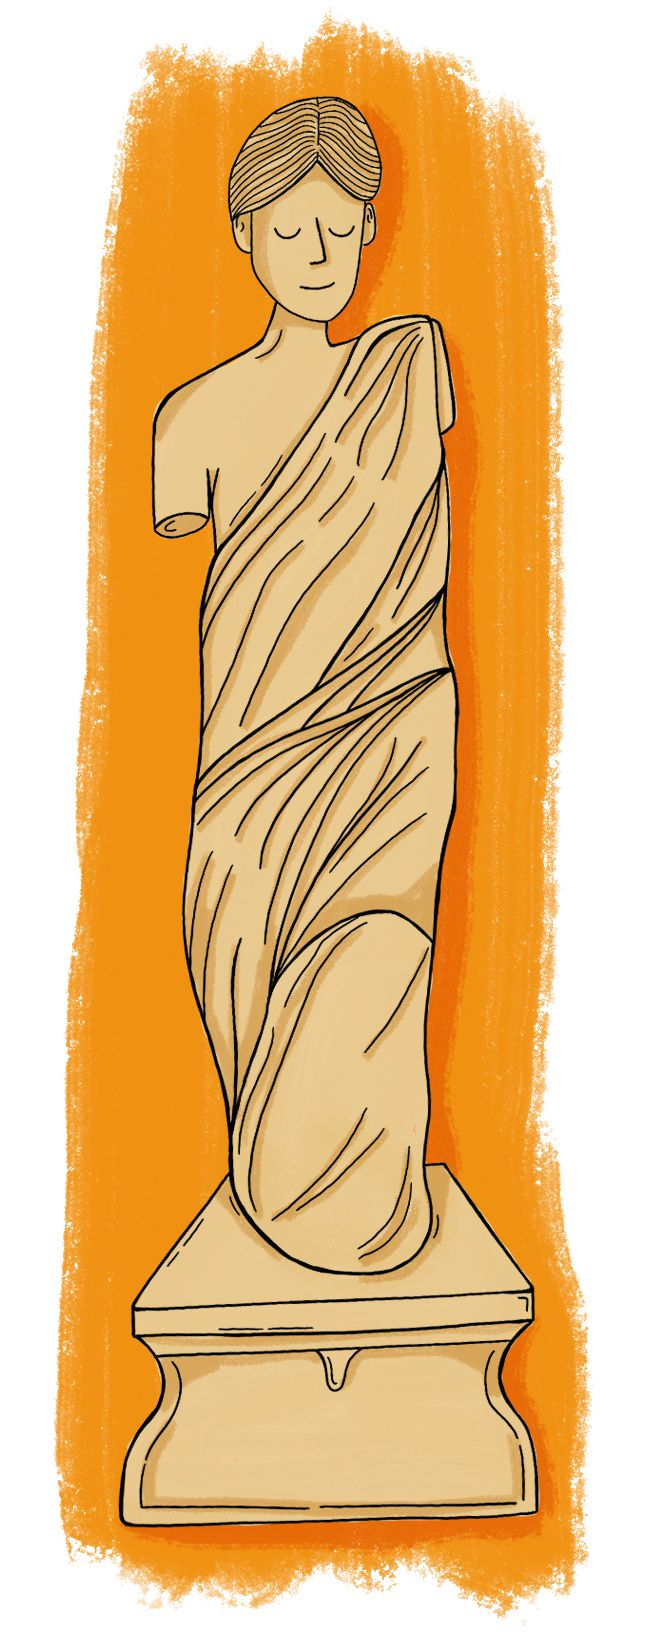 An illustration of a statue of a woman.